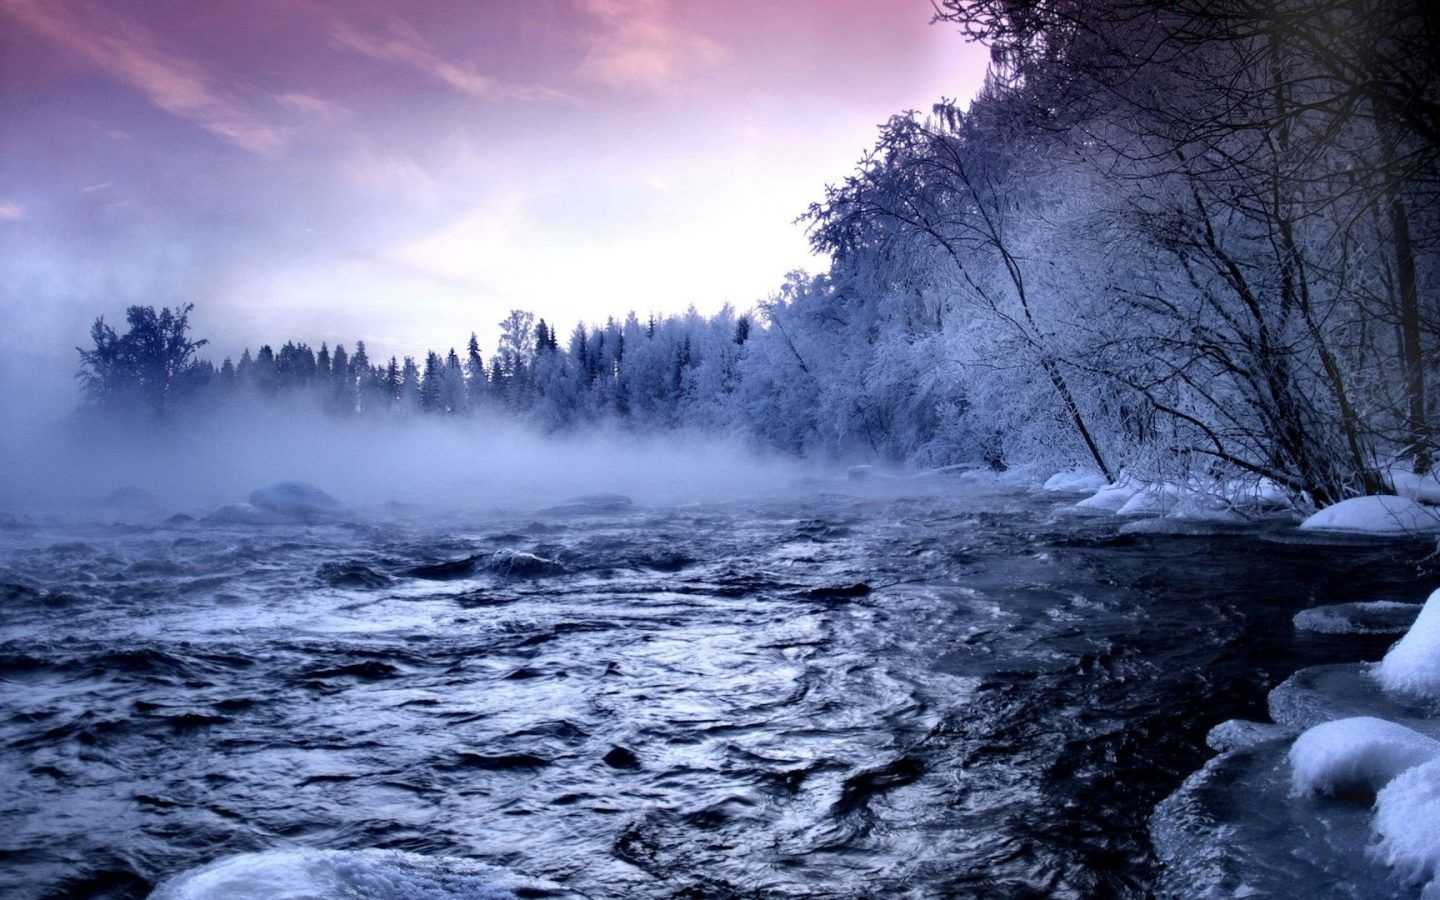 Awesome Nature Mobile Wallpaper Winter Landscape Beautiful Landscape Wallpaper Winter Scenery